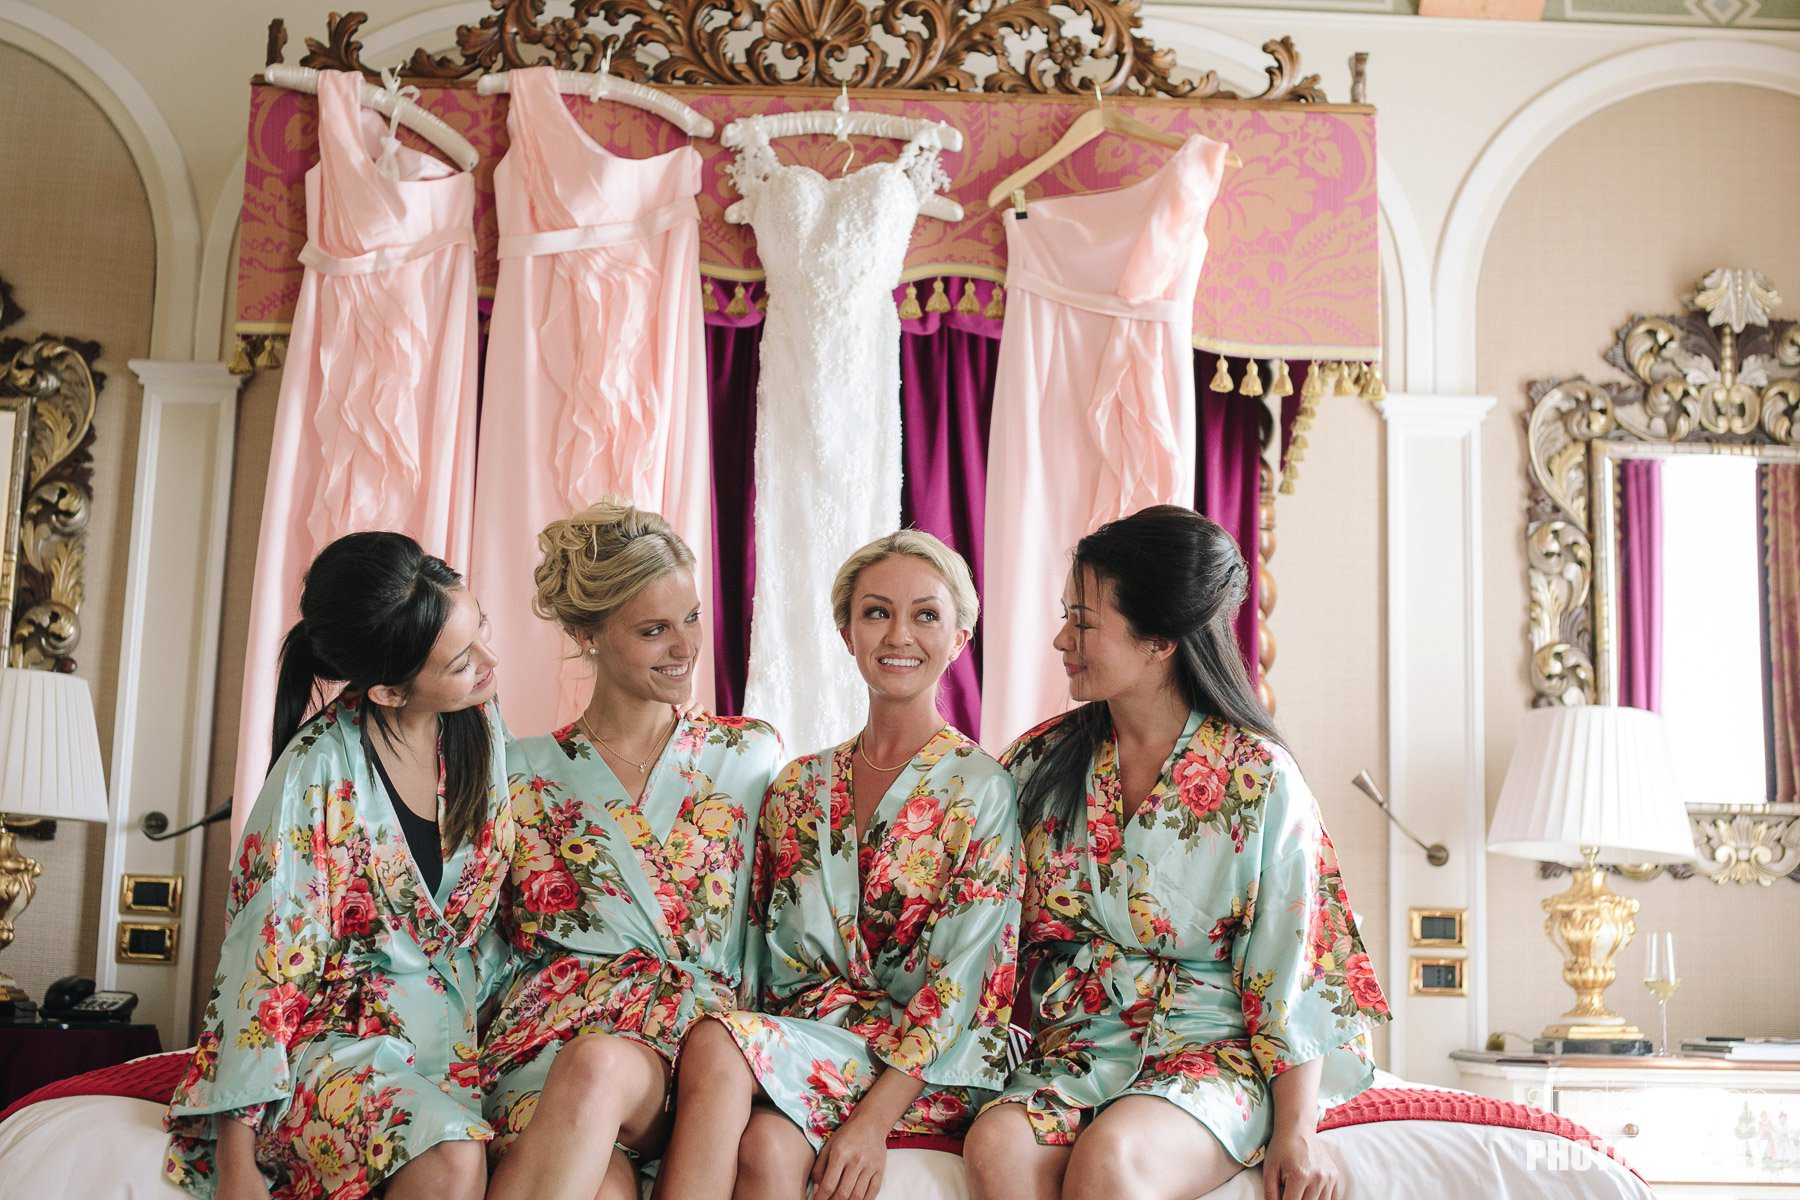 Beautiful bride with bridesmaids in St. Regis suite in Florence. Elegant destination wedding in Tuscany at Vincigliata Castle